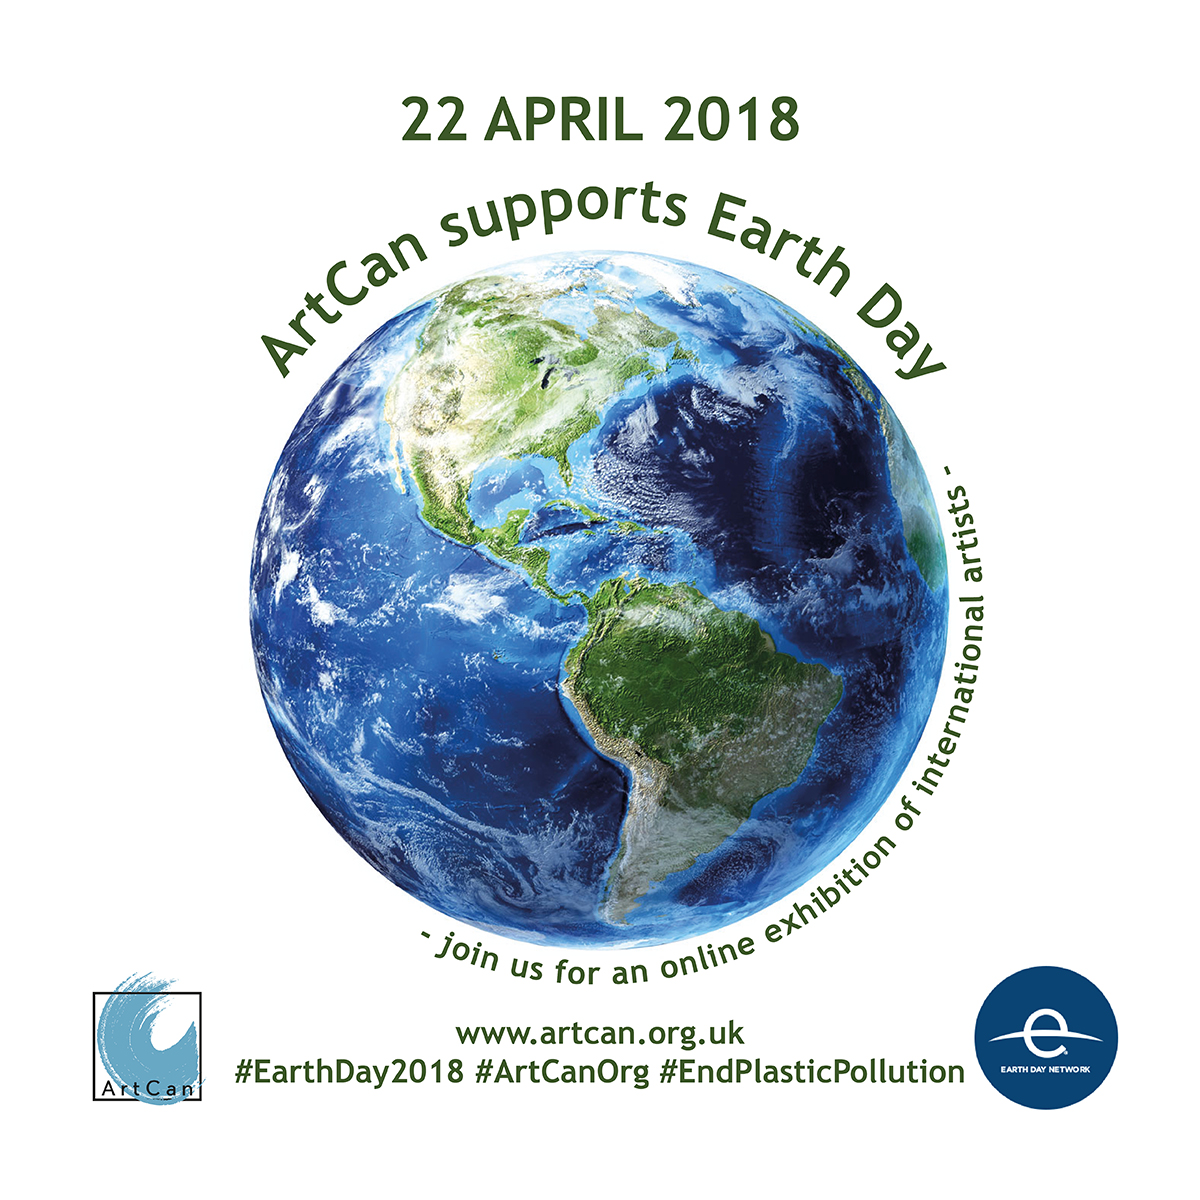 EarthDay Flyer_22 APRIL 20182.jpg